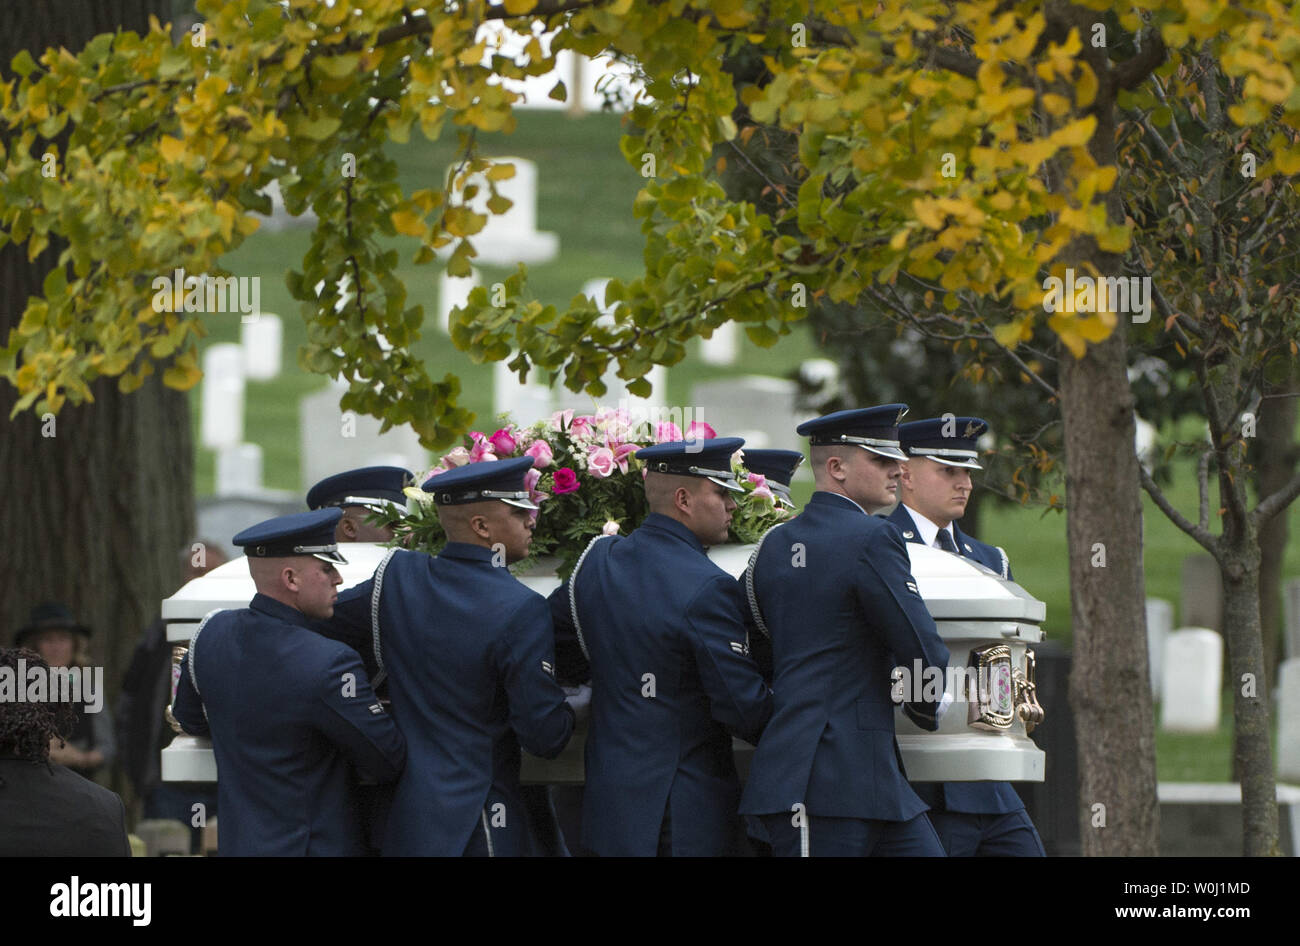 A U.S. Air Force Honor Guard casket team carries the casket containing the remains of actress Maureen O'Hara before she is buried next to her husband Ret. U.S. Air Force Brig. Gen. Charles Blair, during her funeral at Arlington National Cemetery in Arlington, Virginia on November 9, 2015. O'Hara, 95, starred in 'Miracle on 34th Street' and other classic hollywood films. Photo by Kevin Dietsch/UPI. - Stock Image